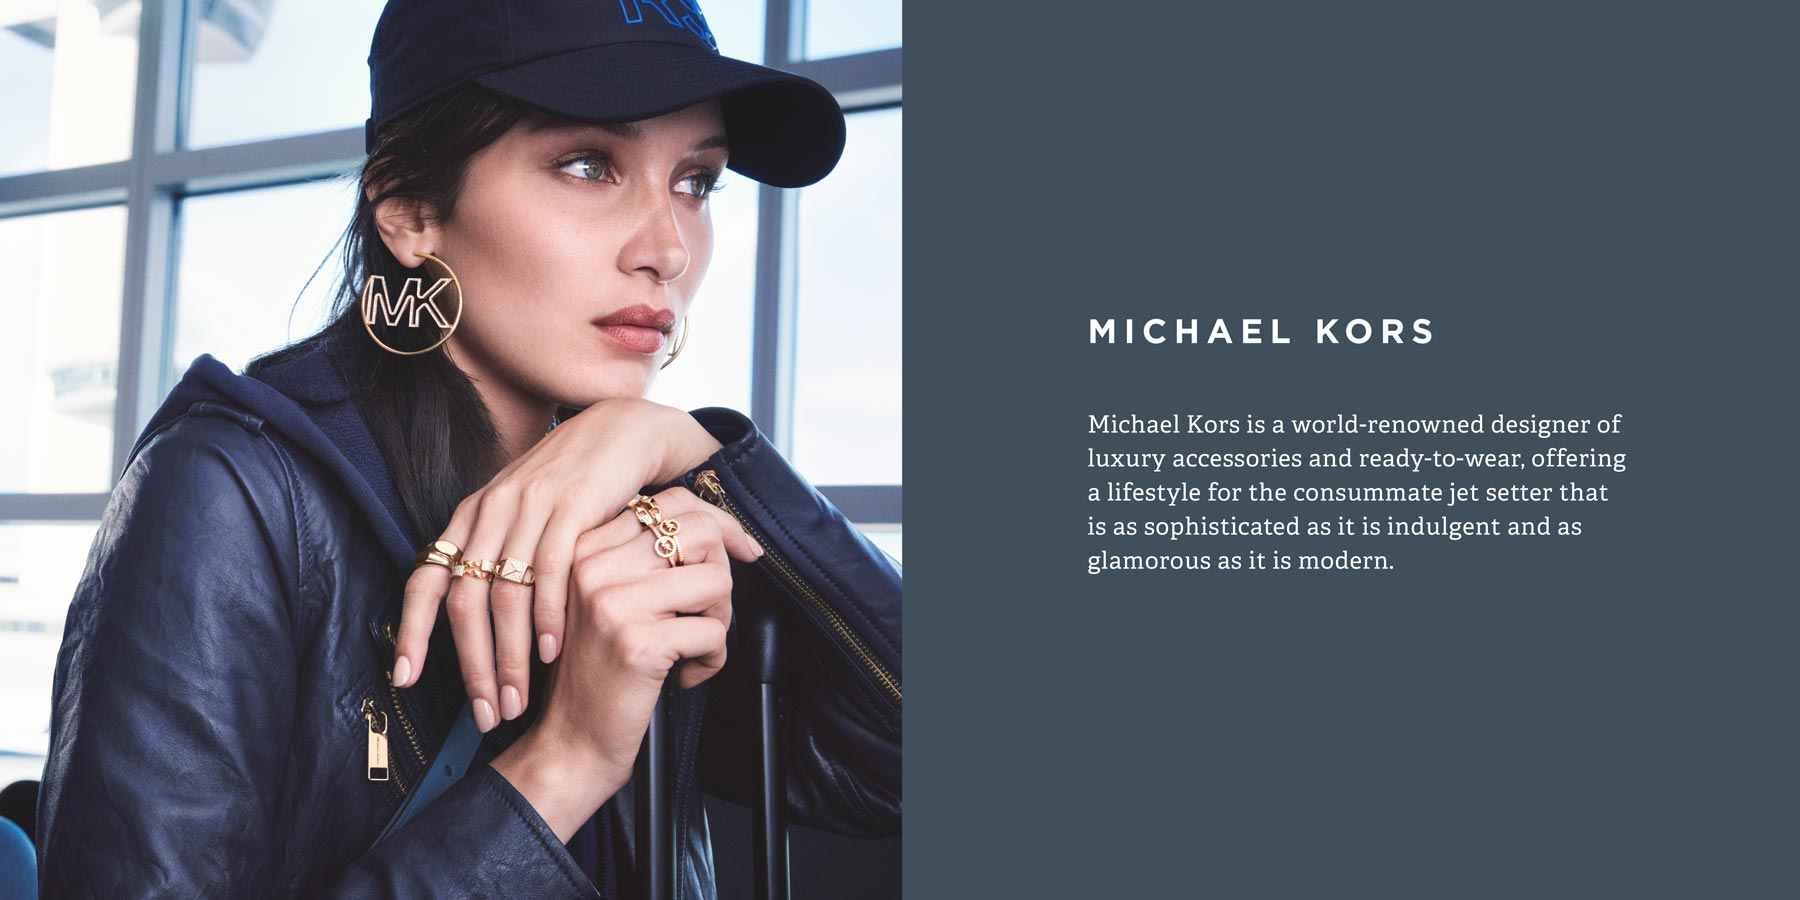 ​​Michael Kors is a world-renowned designer of luxury accessories and ready-to-wear, offering a lifestyle for the consummate jet setter that is as sophisticated as it is indulgent and as glamorous as it is modern.